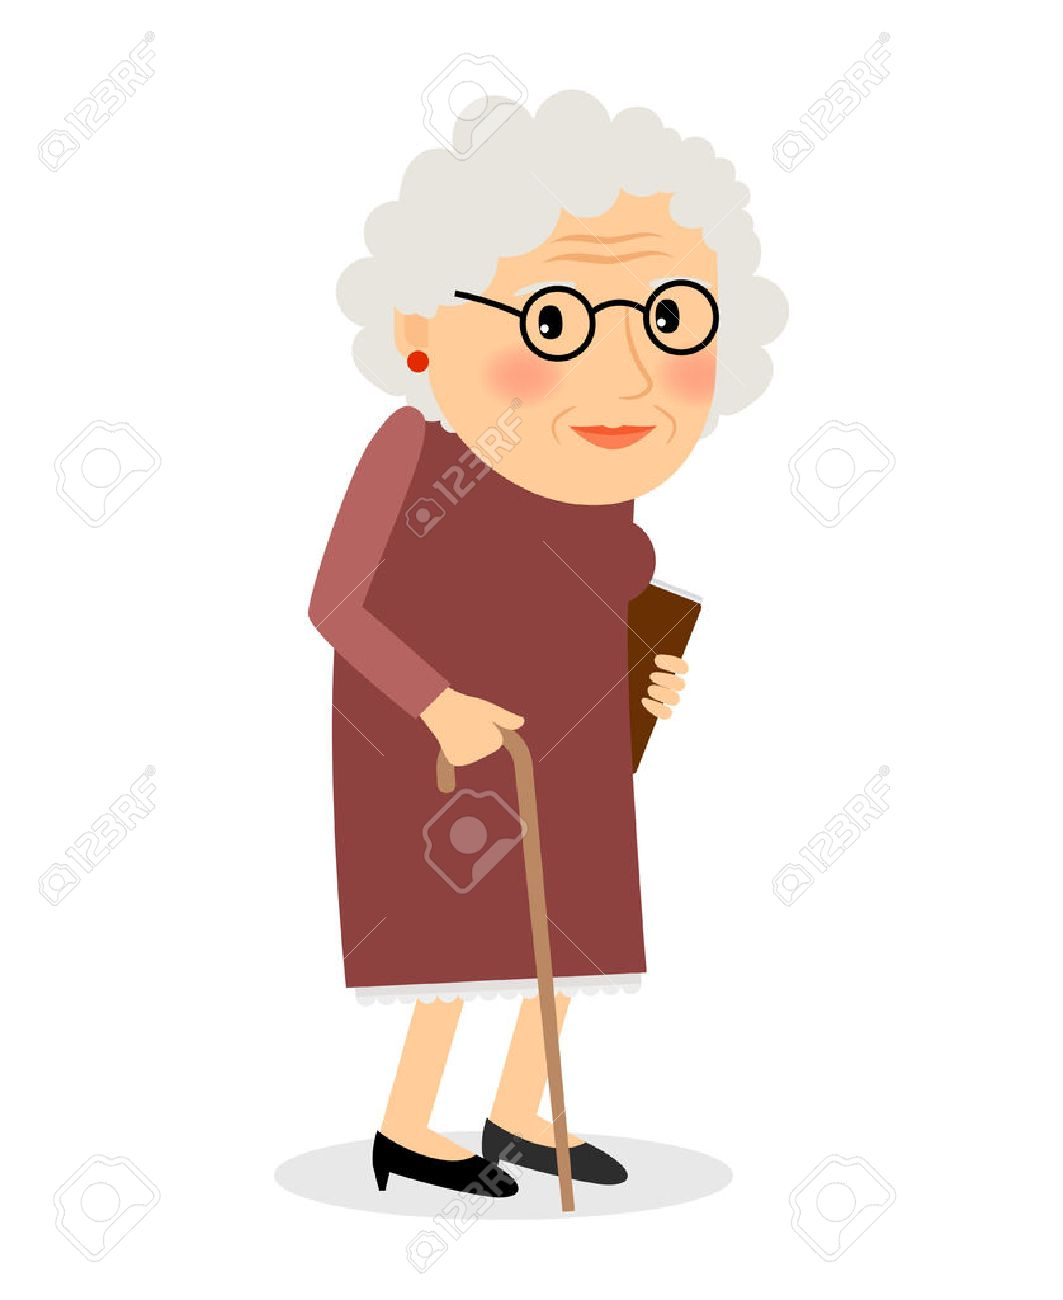 49964324-old-woman-with-cane-senior-lady-with-glasses-walking-vector-illustration-